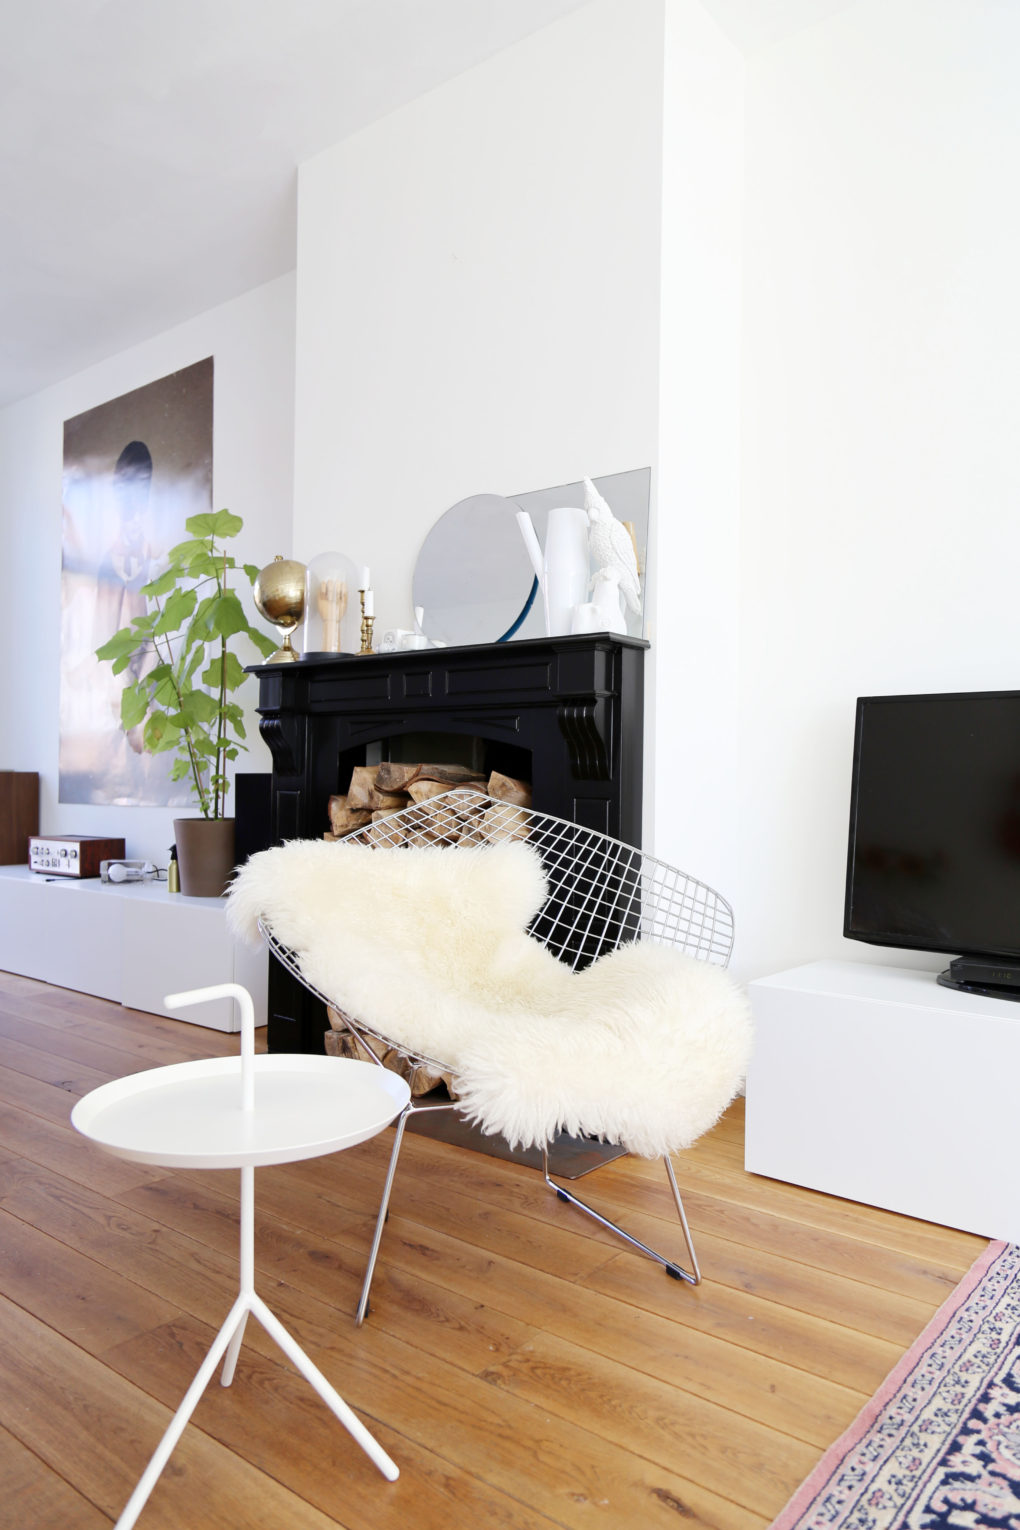 Bertoia diamond chair sheepskin - As You Can See We Made Some Other Changes In The Livingroom As Well With The Ikea Besta Cabinets Moving Up To The Other Side Of The Room